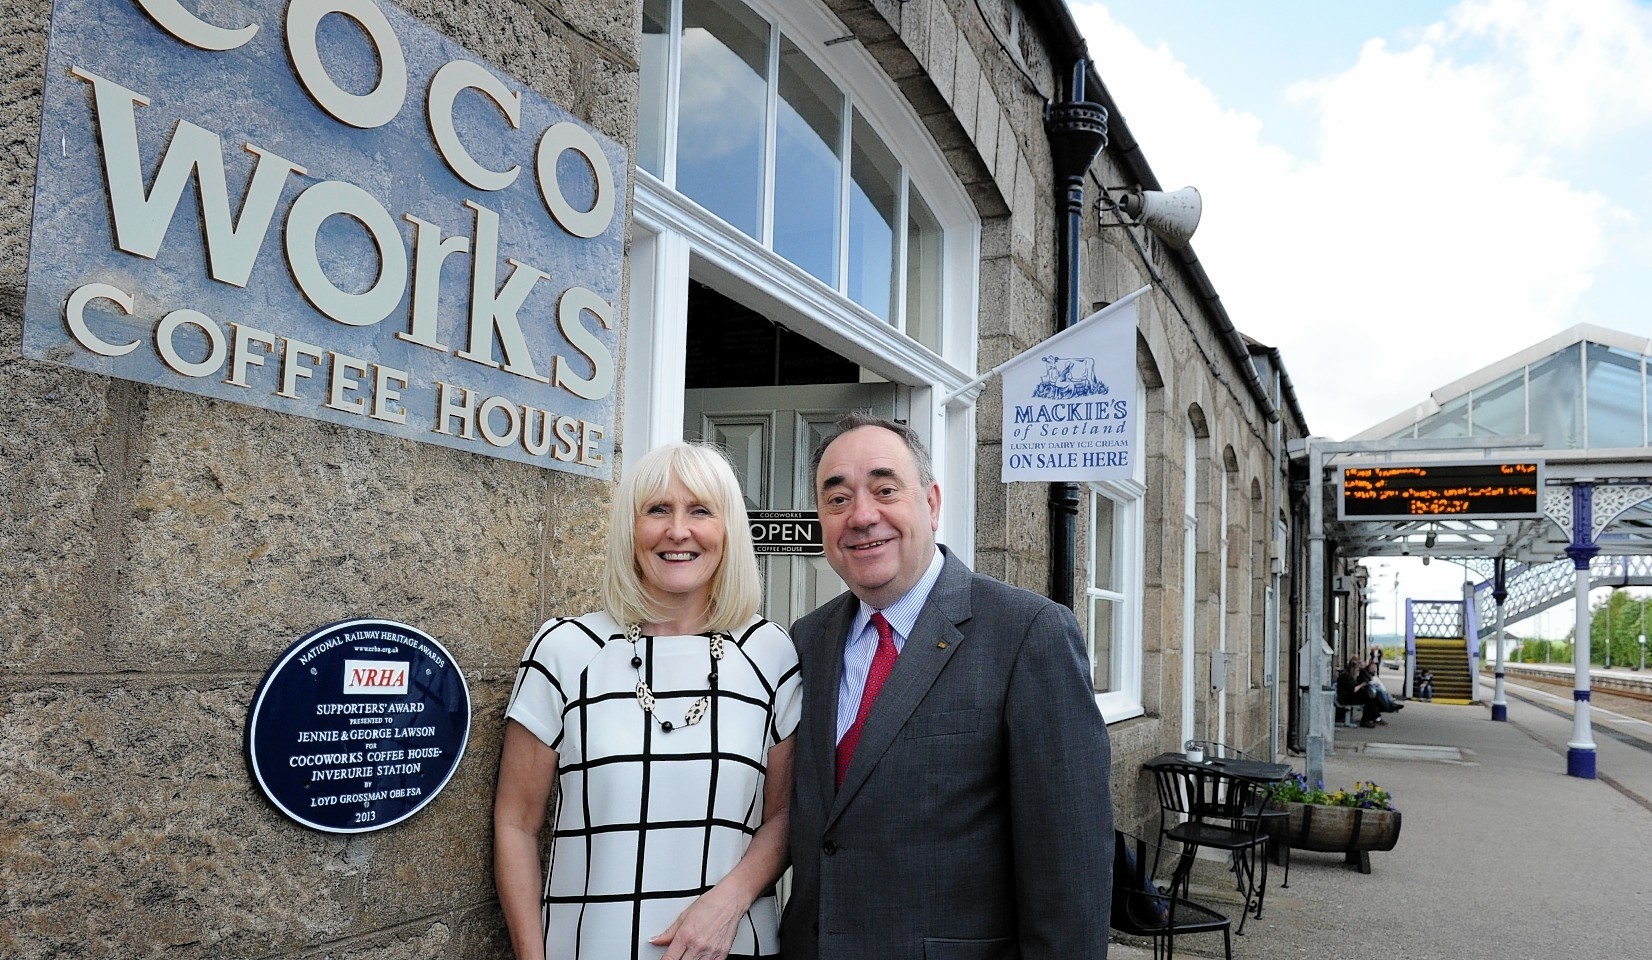 Alex Salmond with Jennie Lowson at the opening of the Coco Works, Train Staion, Inverurie